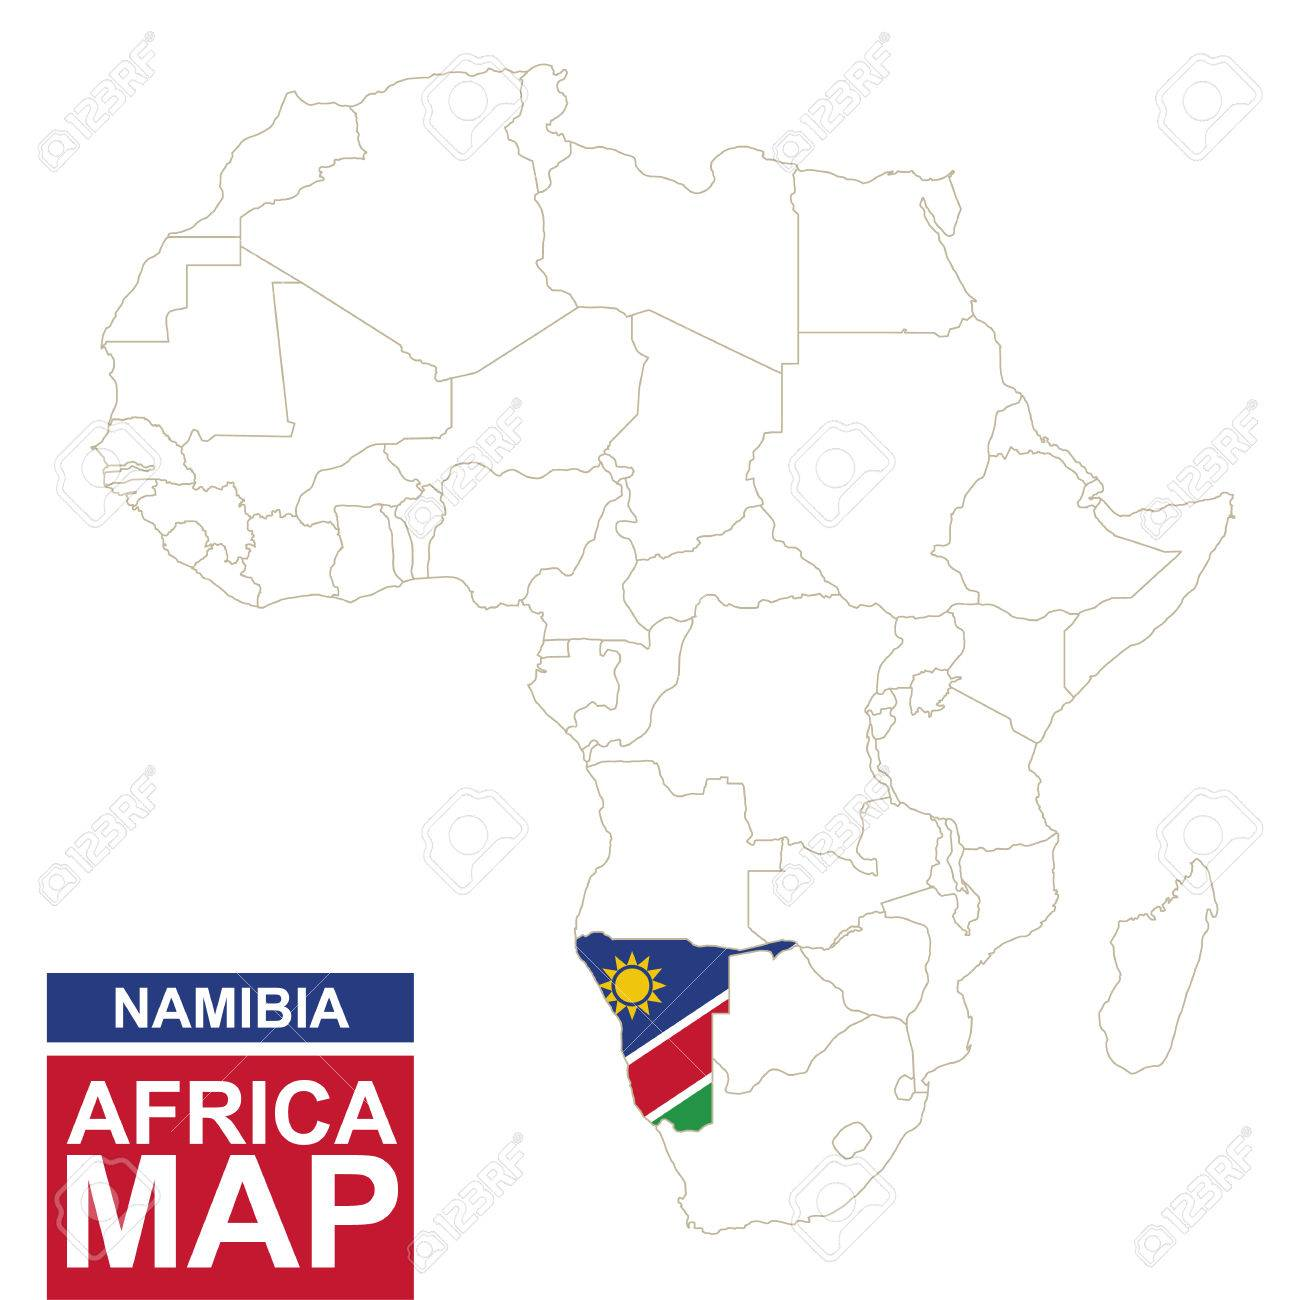 Namibia On Africa Map.Africa Contoured Map With Highlighted Namibia Namibia Map And